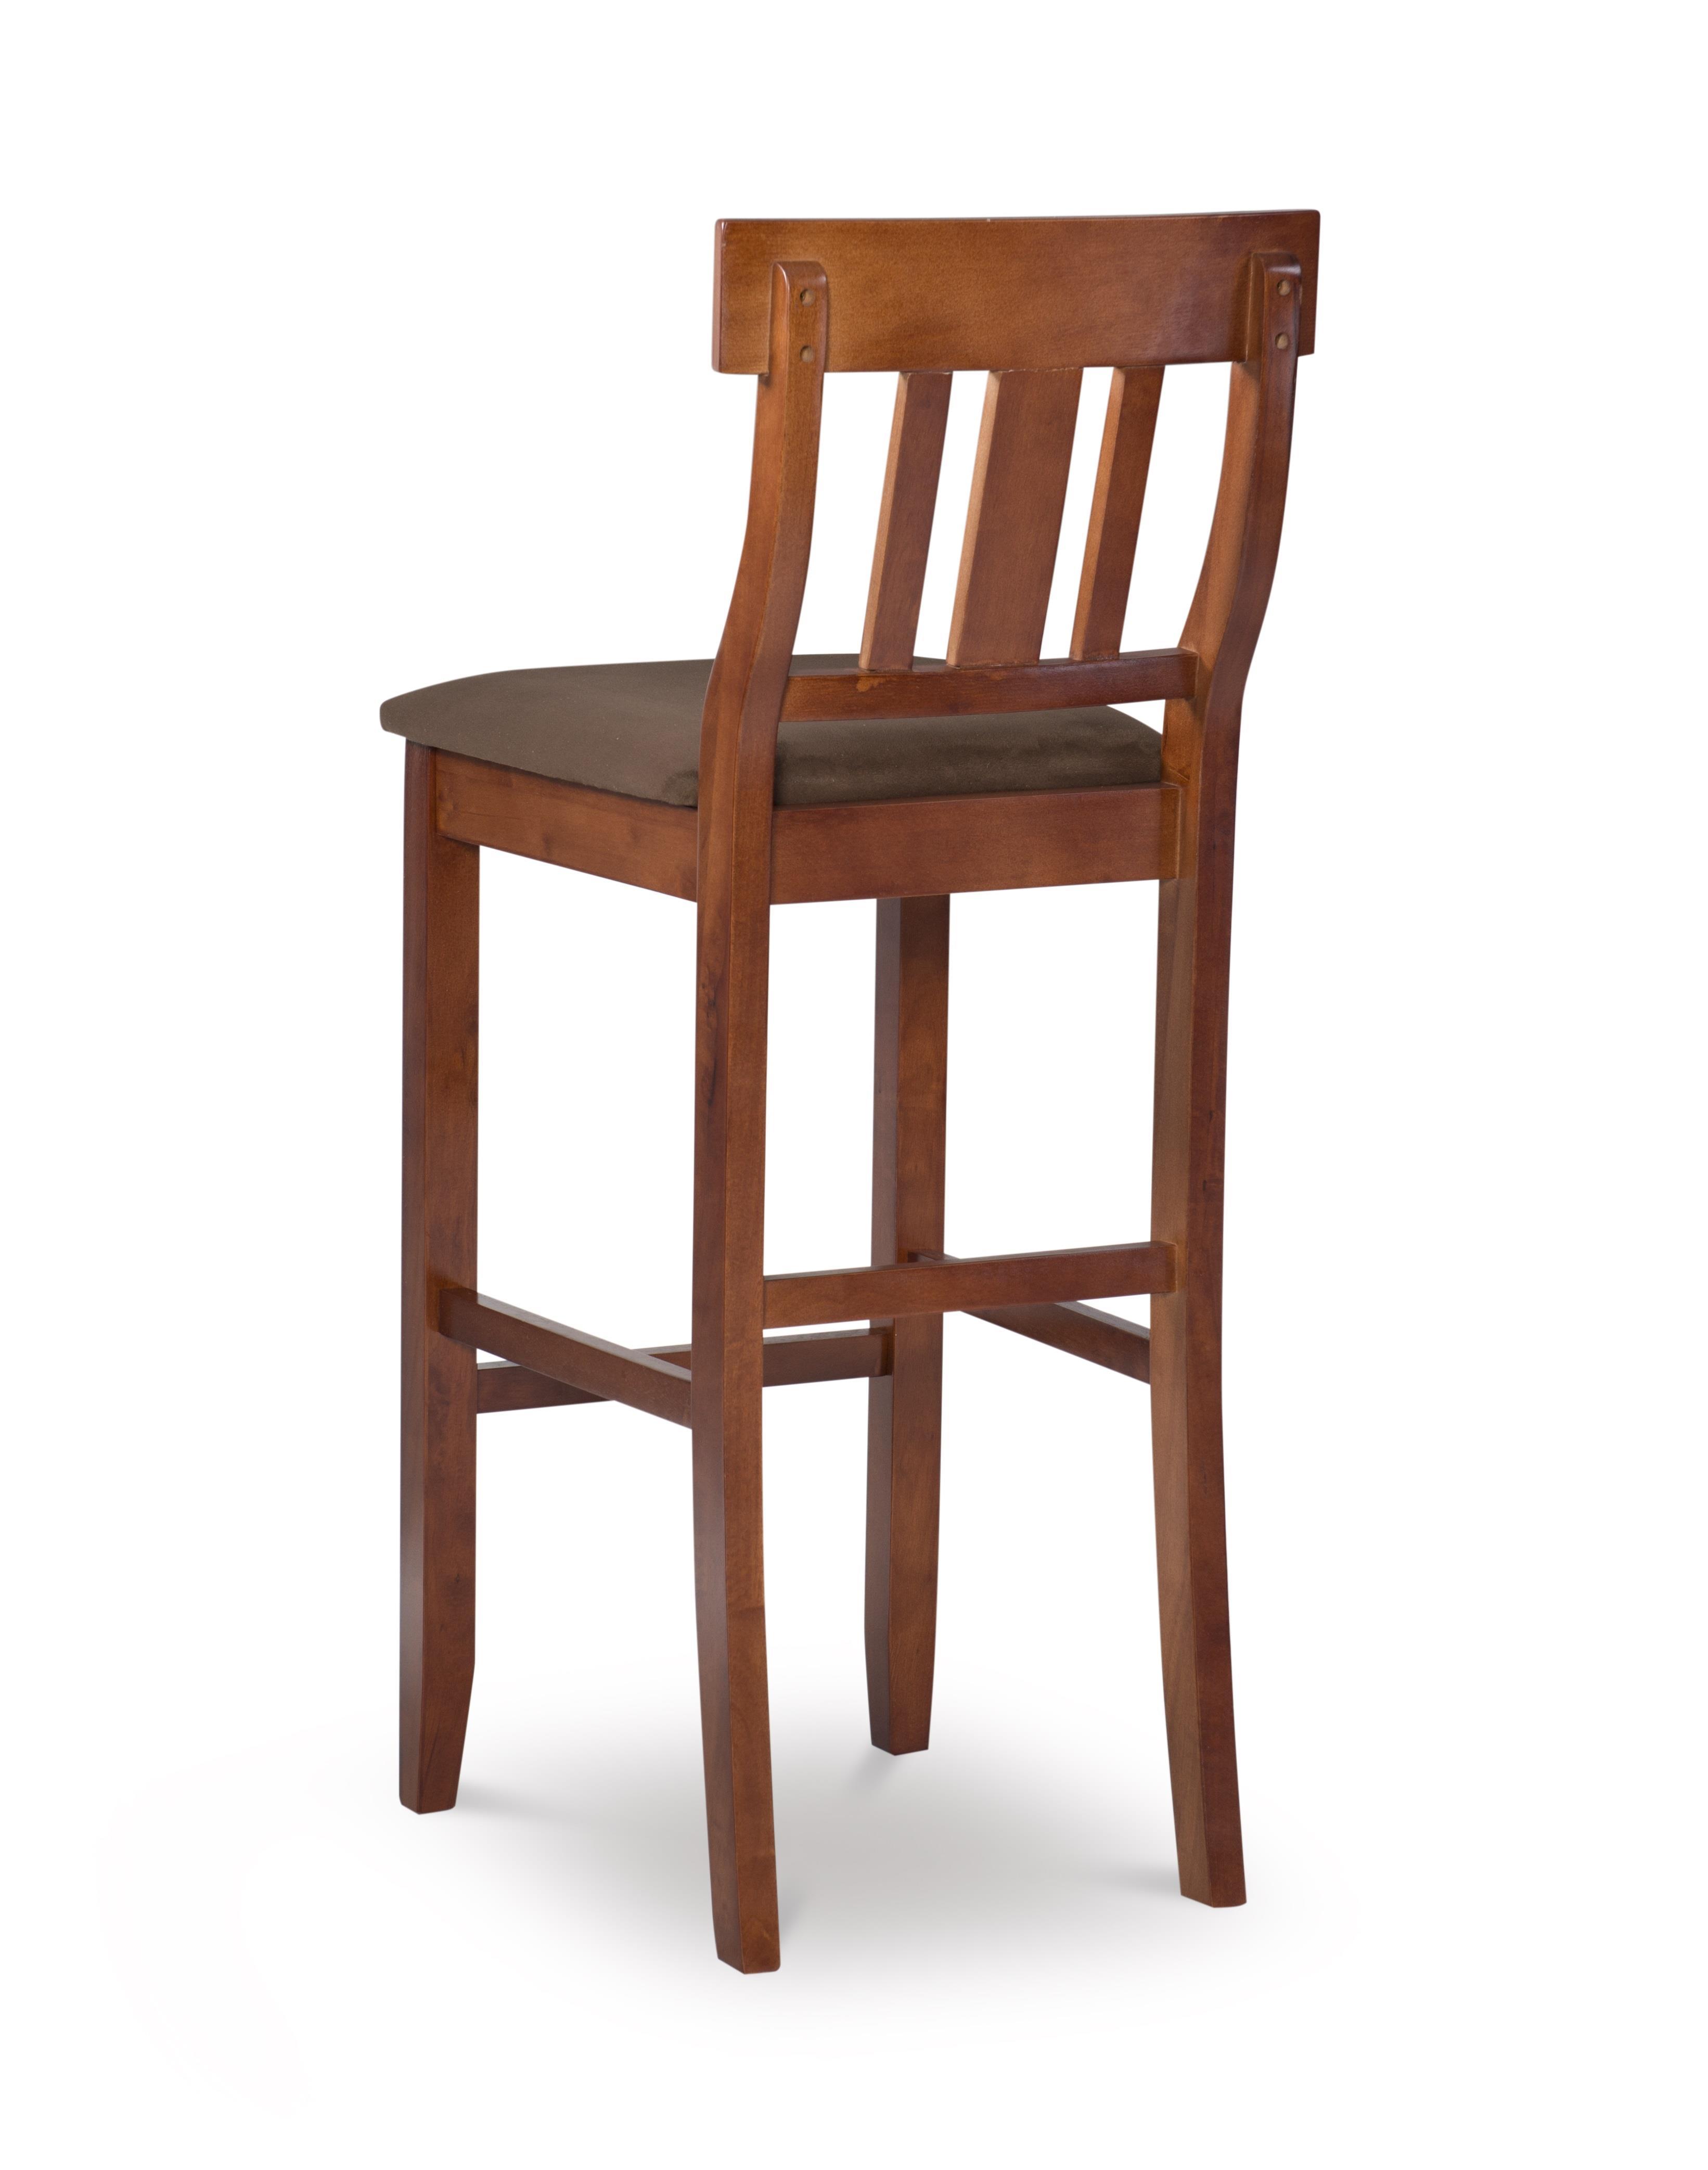 Pleasant Linon Torino Collection Slat Back Bar Stool Brown Squirreltailoven Fun Painted Chair Ideas Images Squirreltailovenorg